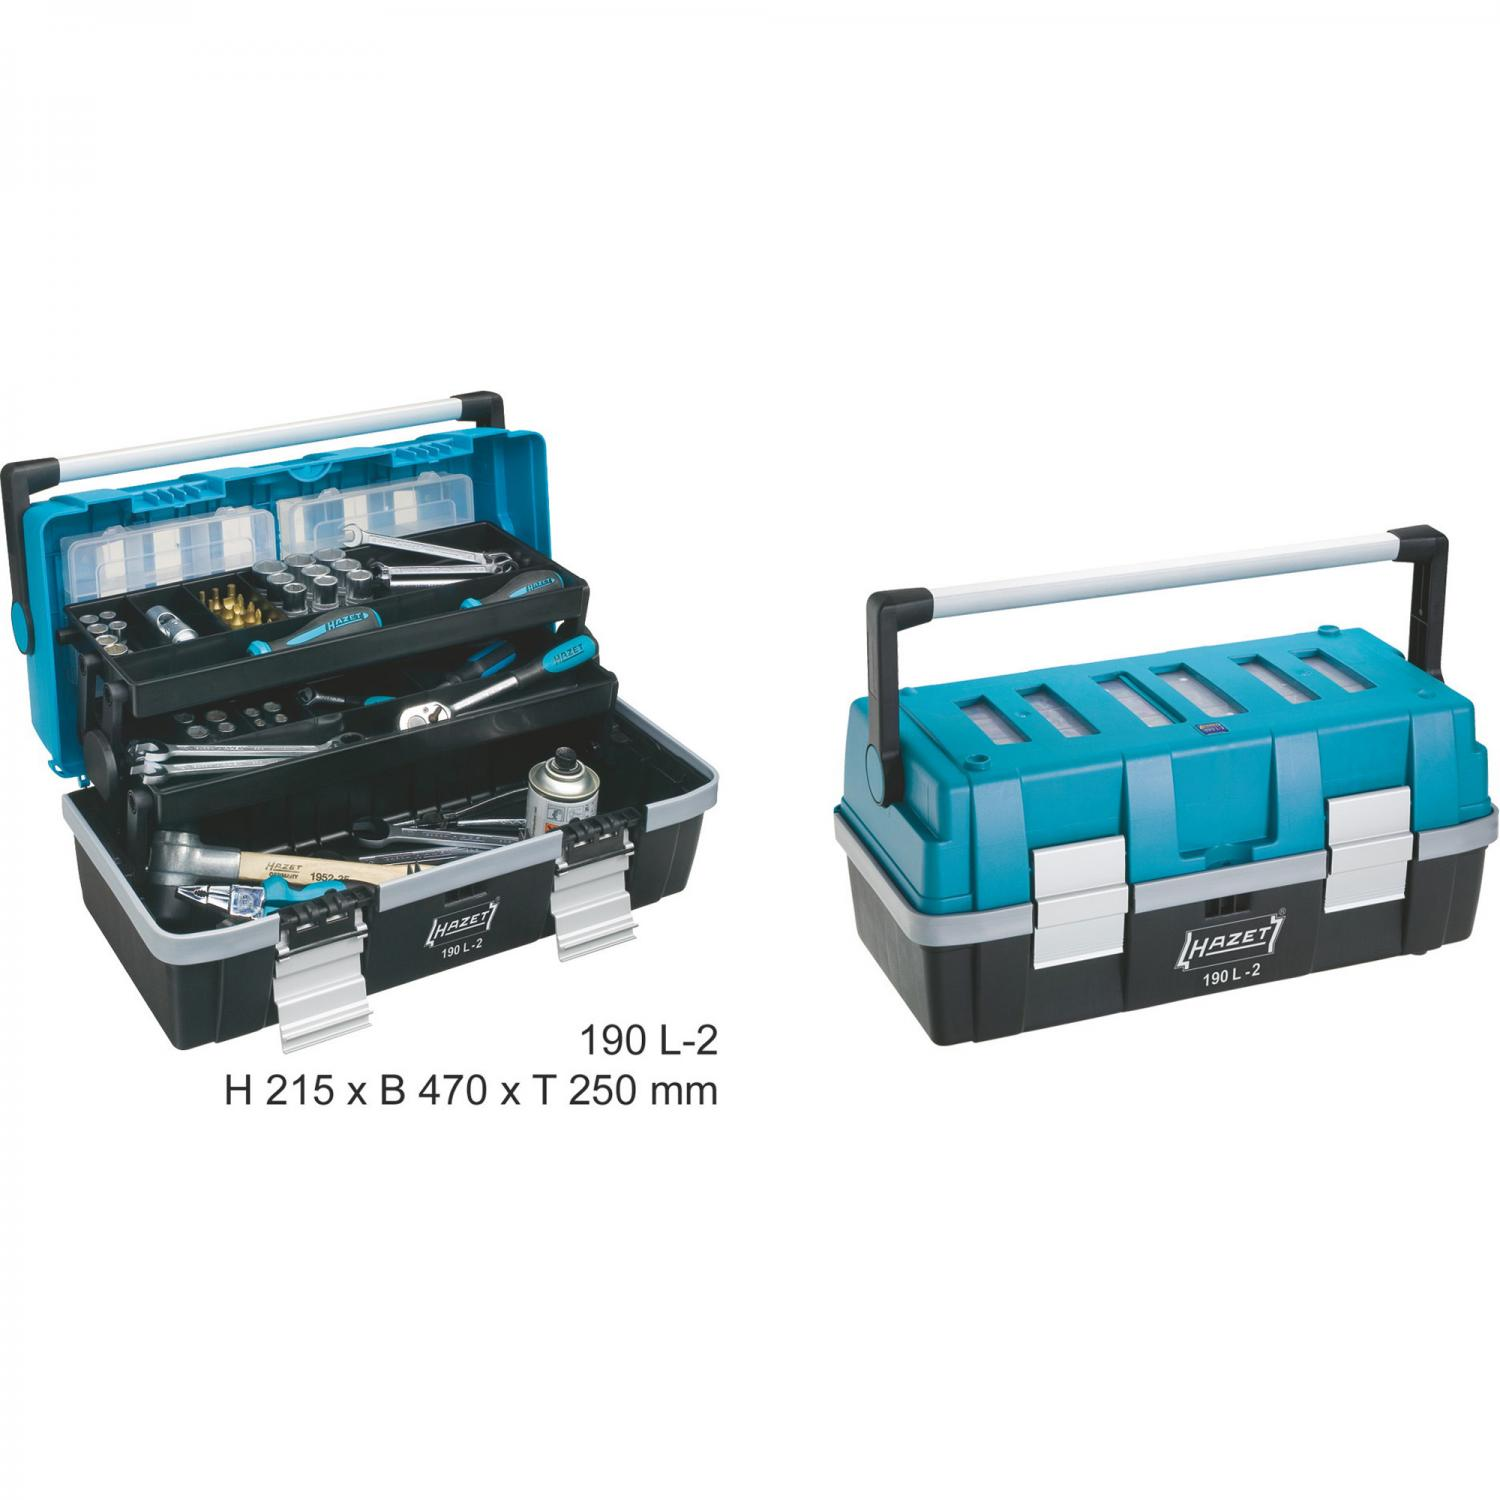 hazet 190l-2 tool box | tool case | general workshop equipment